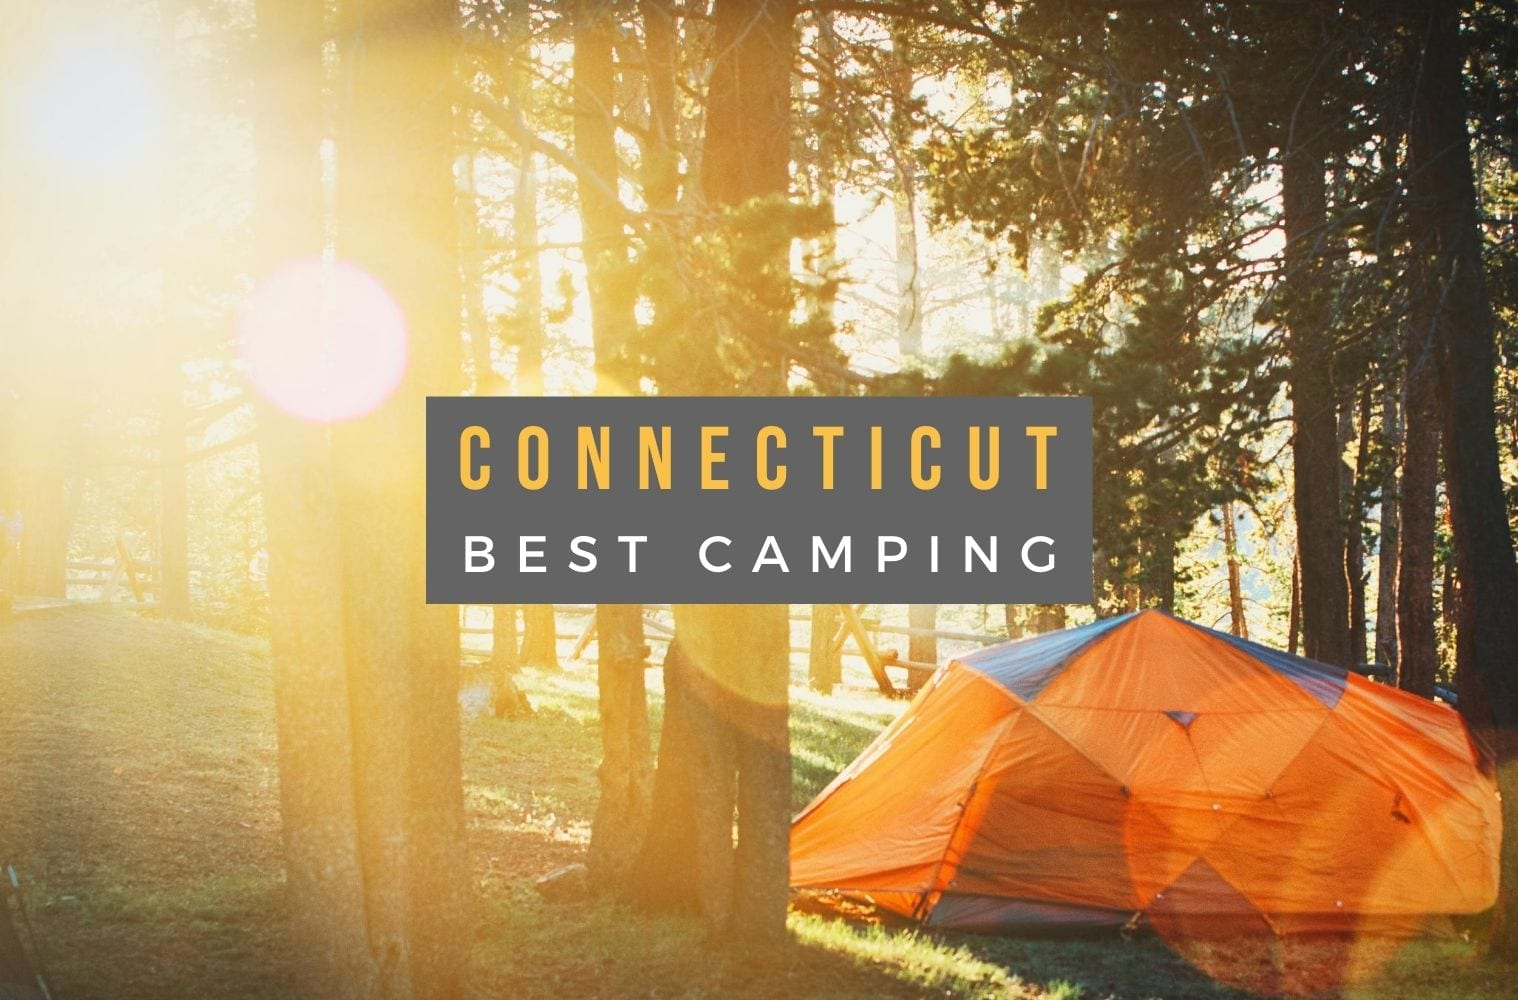 Best Camping Sites in Connecticut